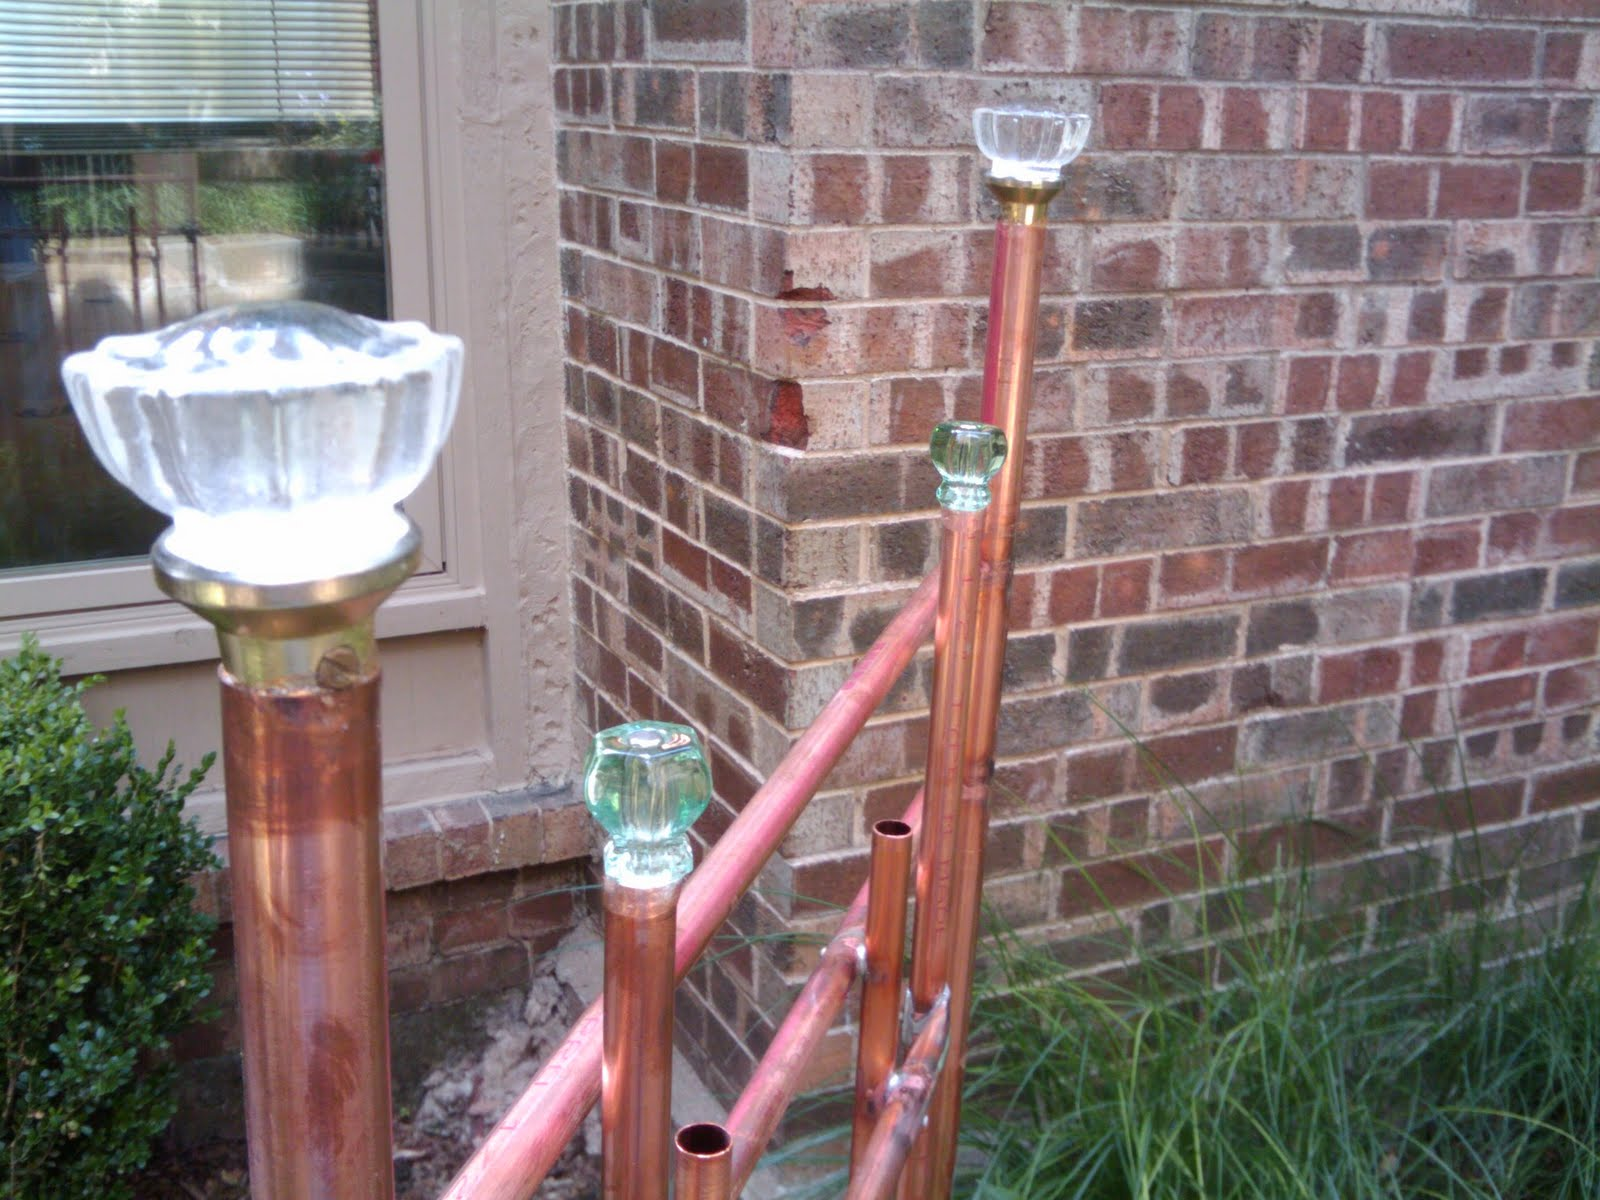 macaroni cheese dma and our copper garden trellis dma and our copper garden trellis